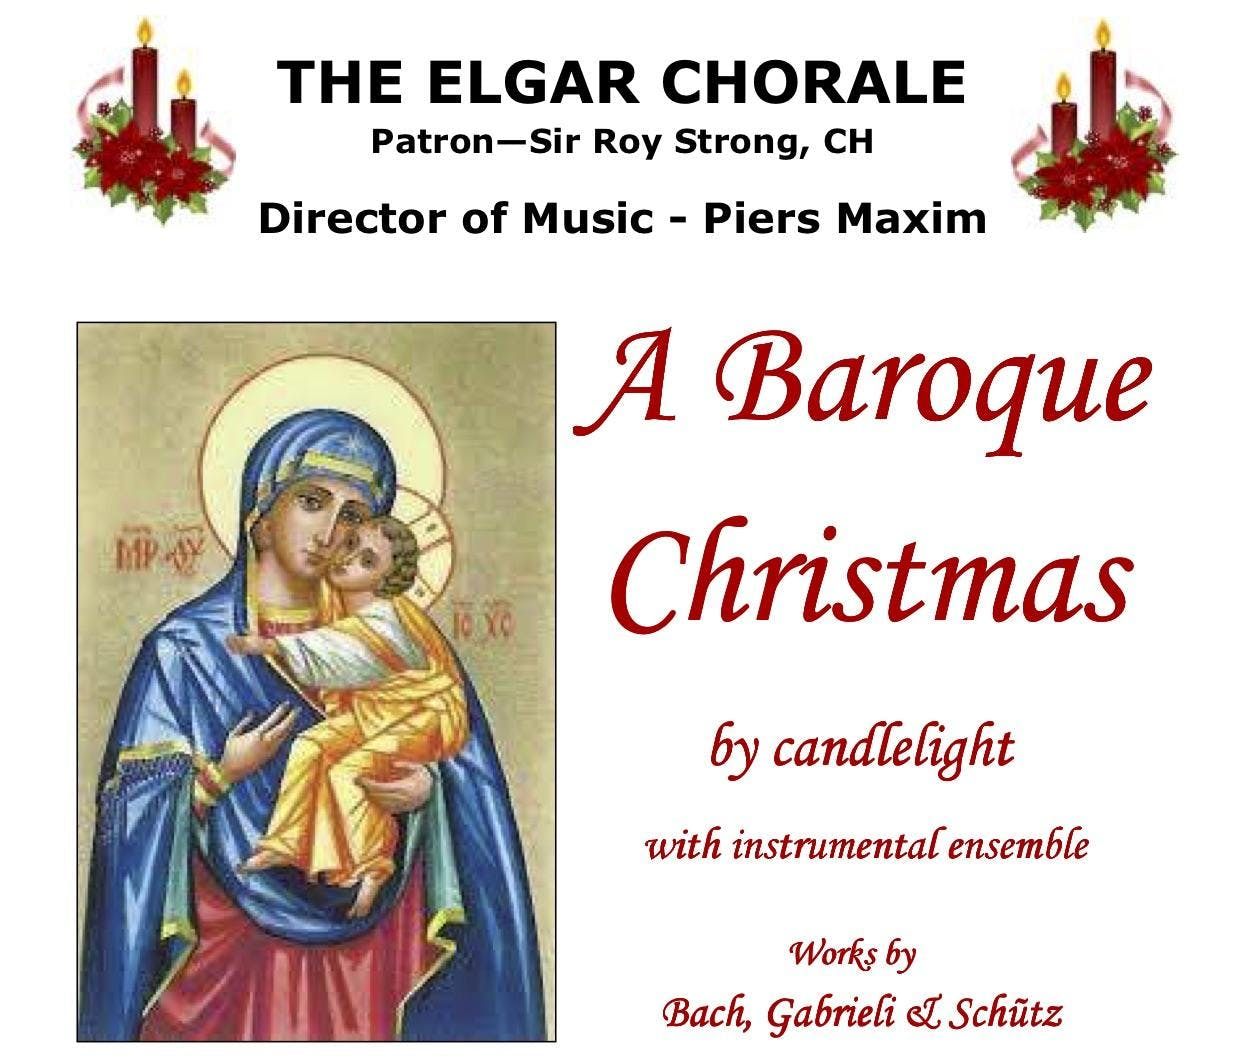 A Baroque Christmas by Candlelight - 15 DEC 2018